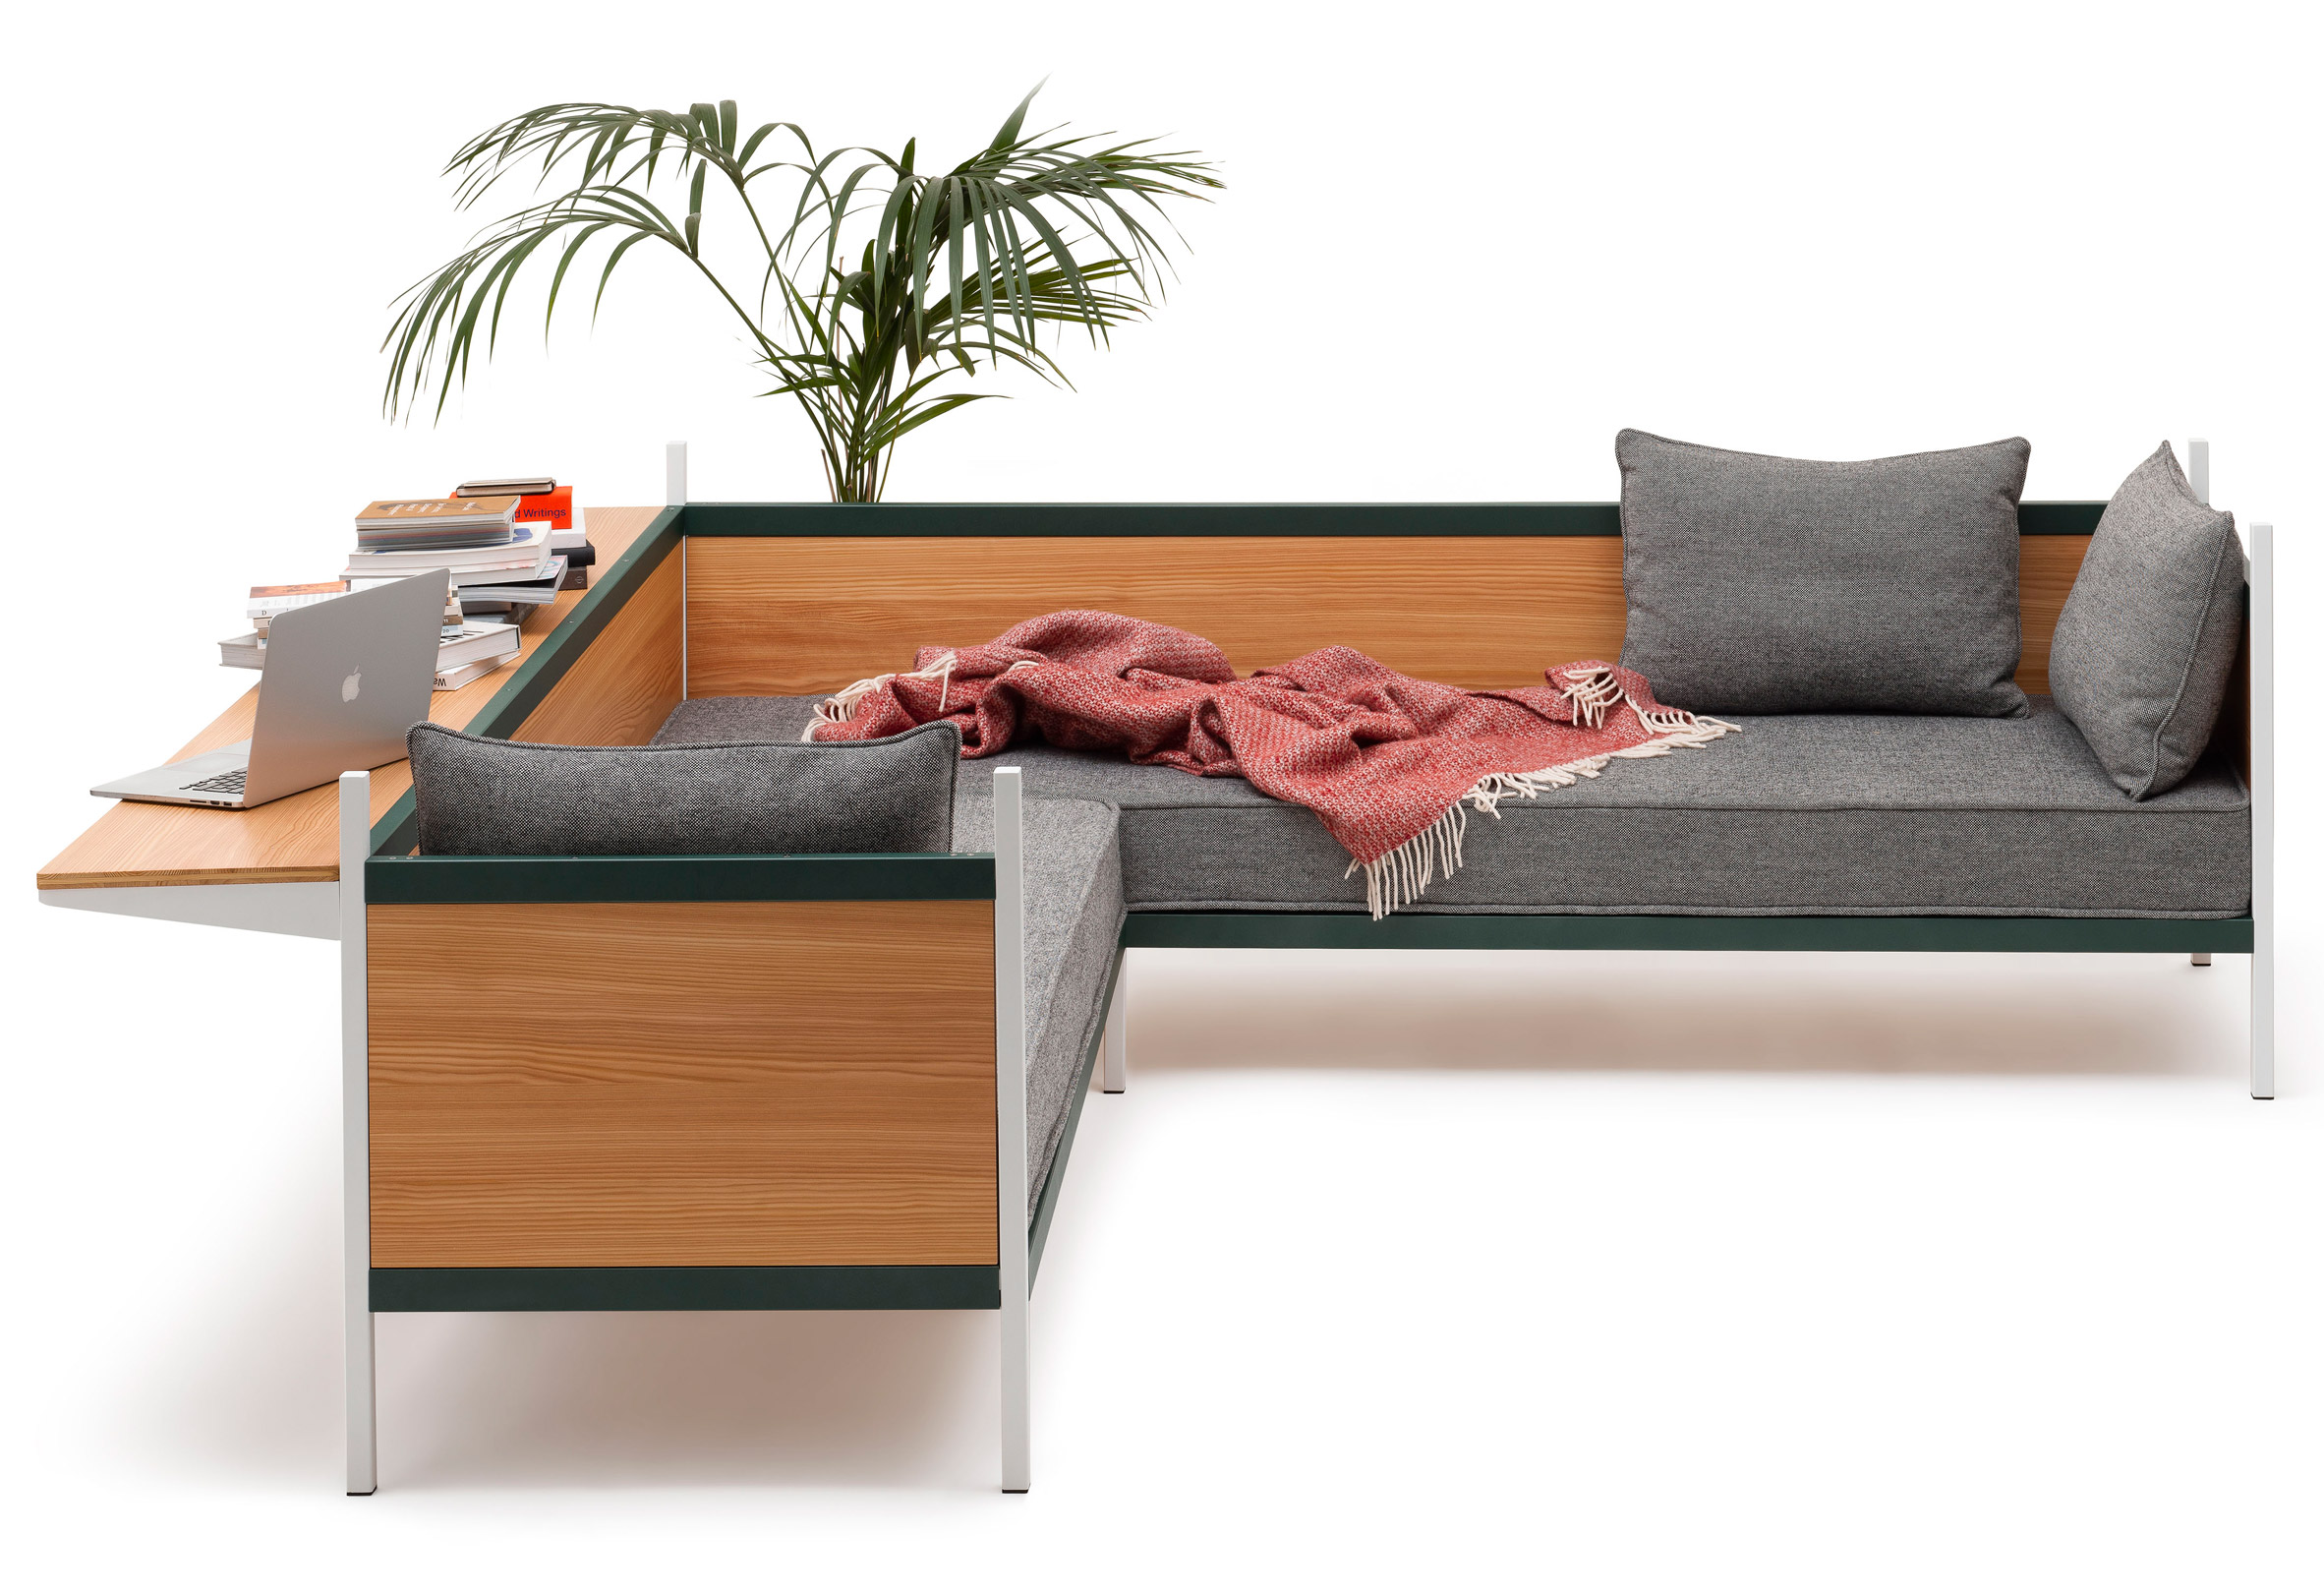 established-sons-at-work-office-furniture-products_dezeen_2364_col_8.jpg